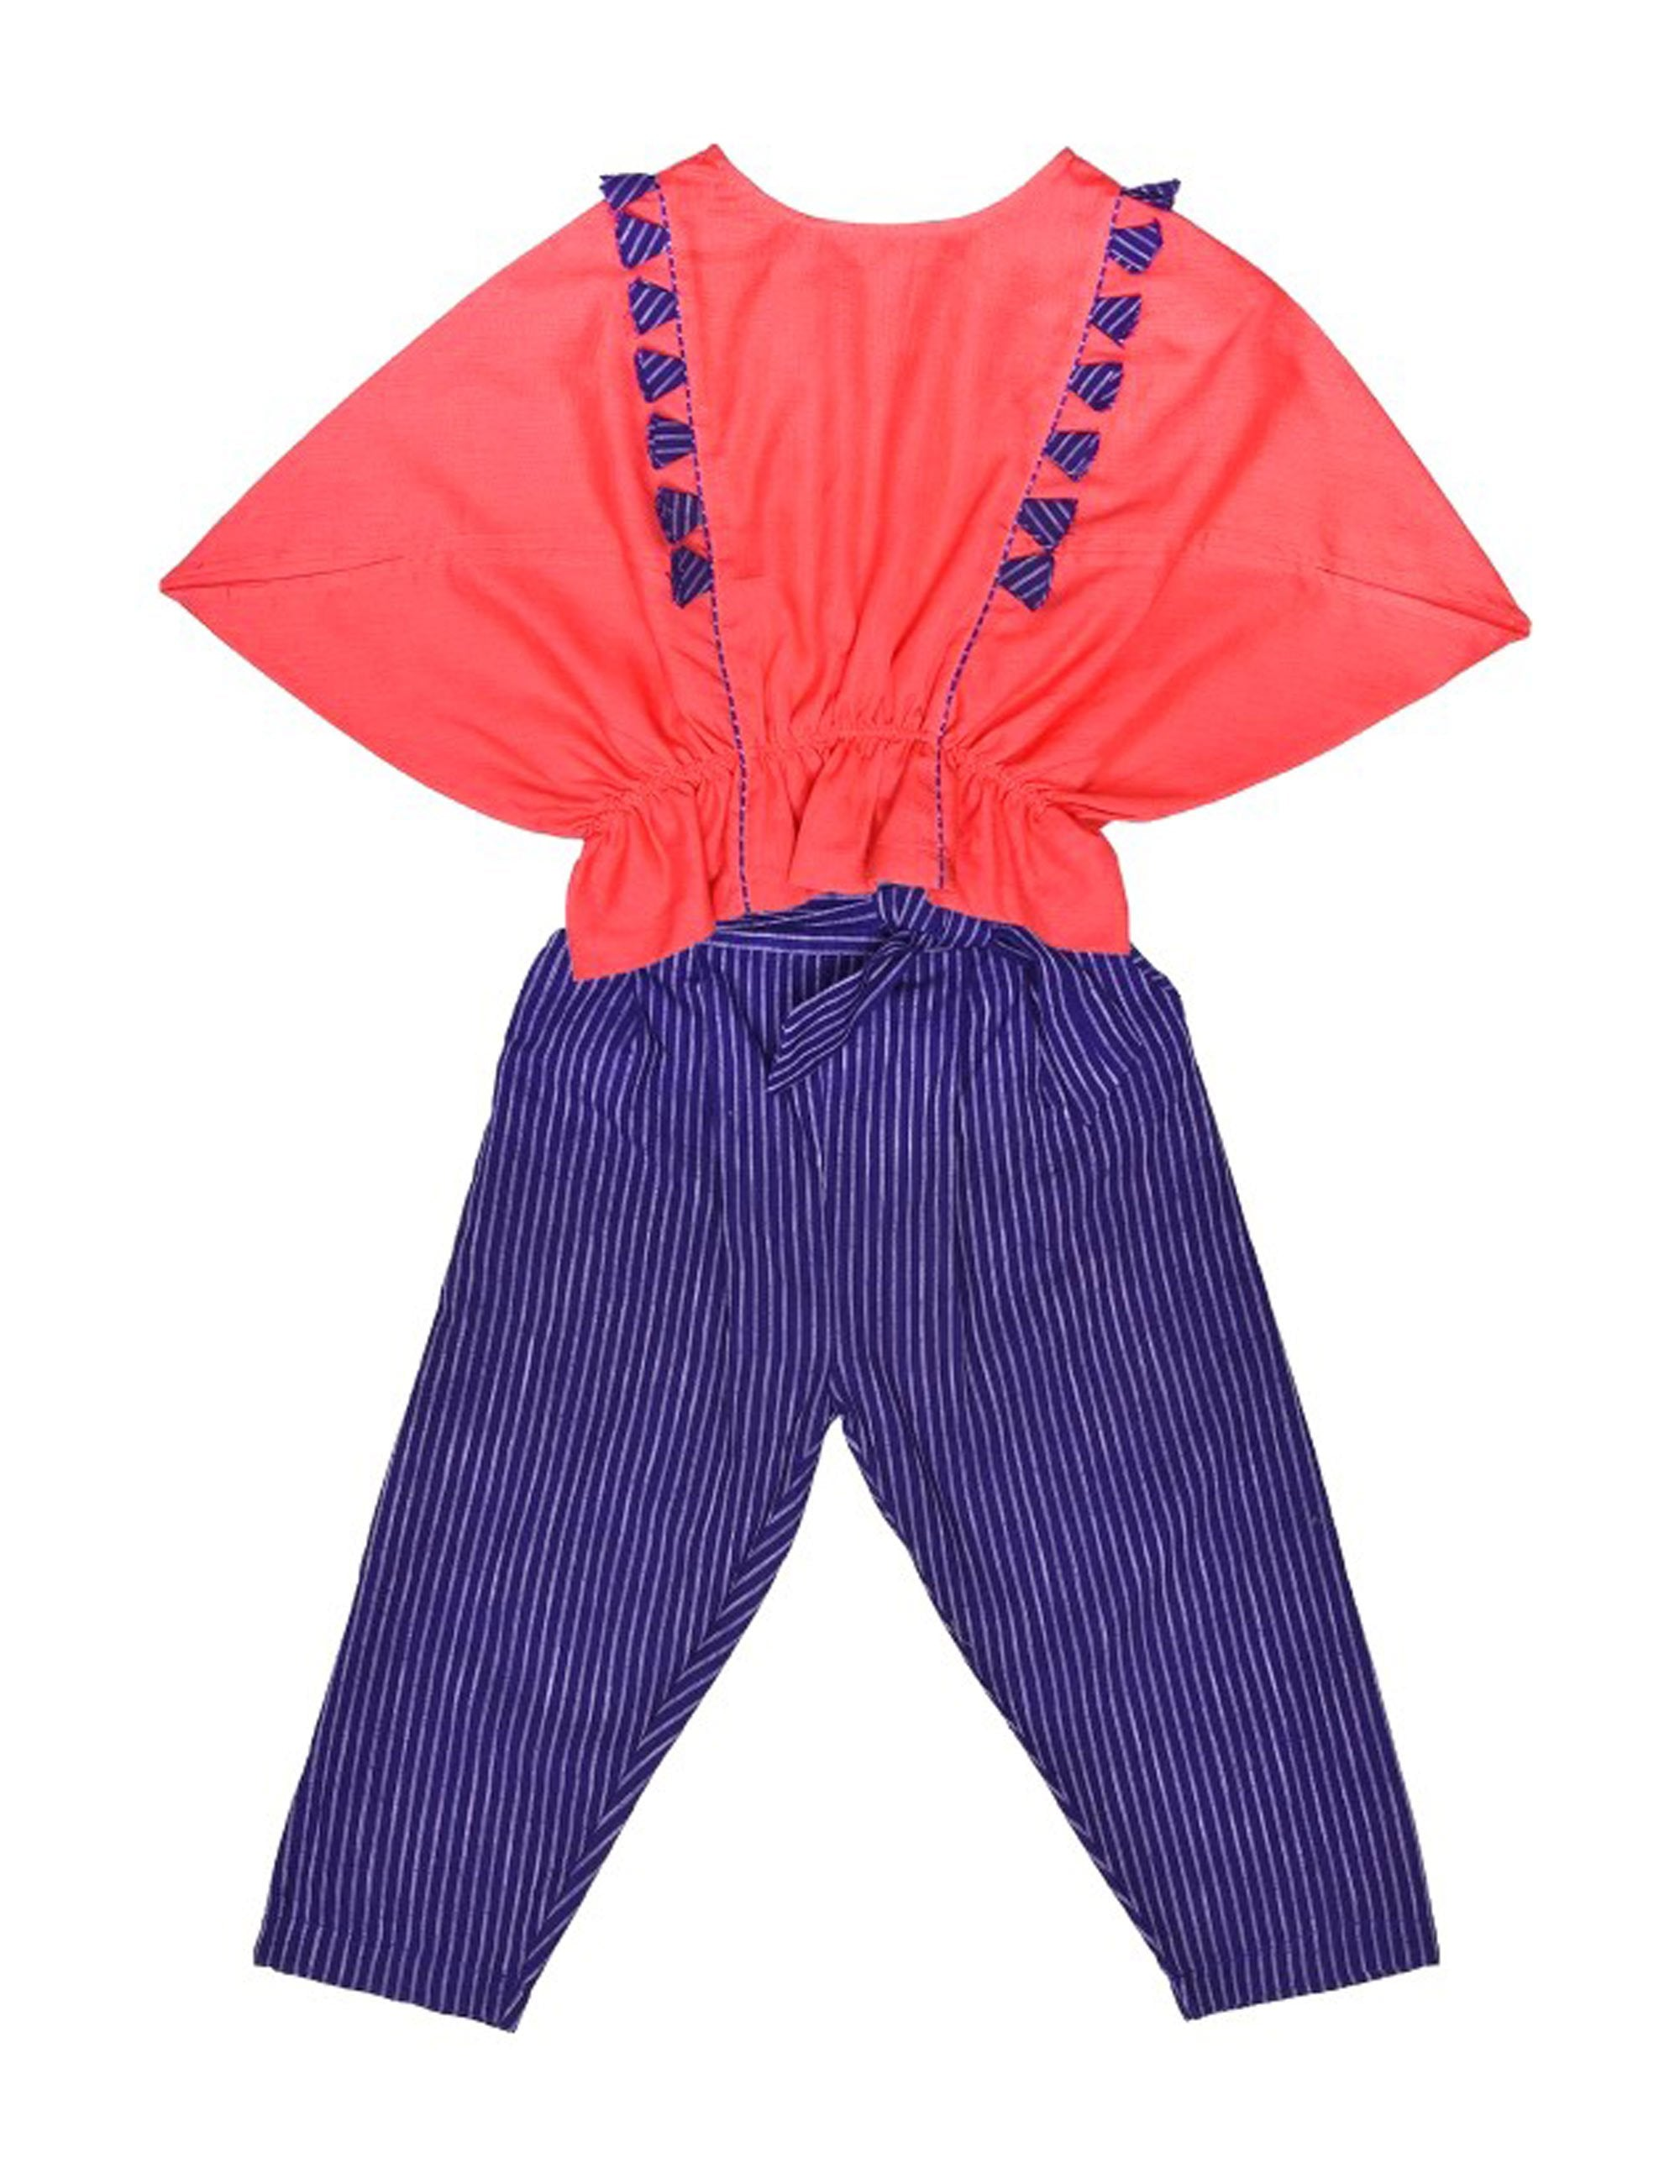 Balloon Tops wWth Triangular Sleeves and Striped Trouser for Girls